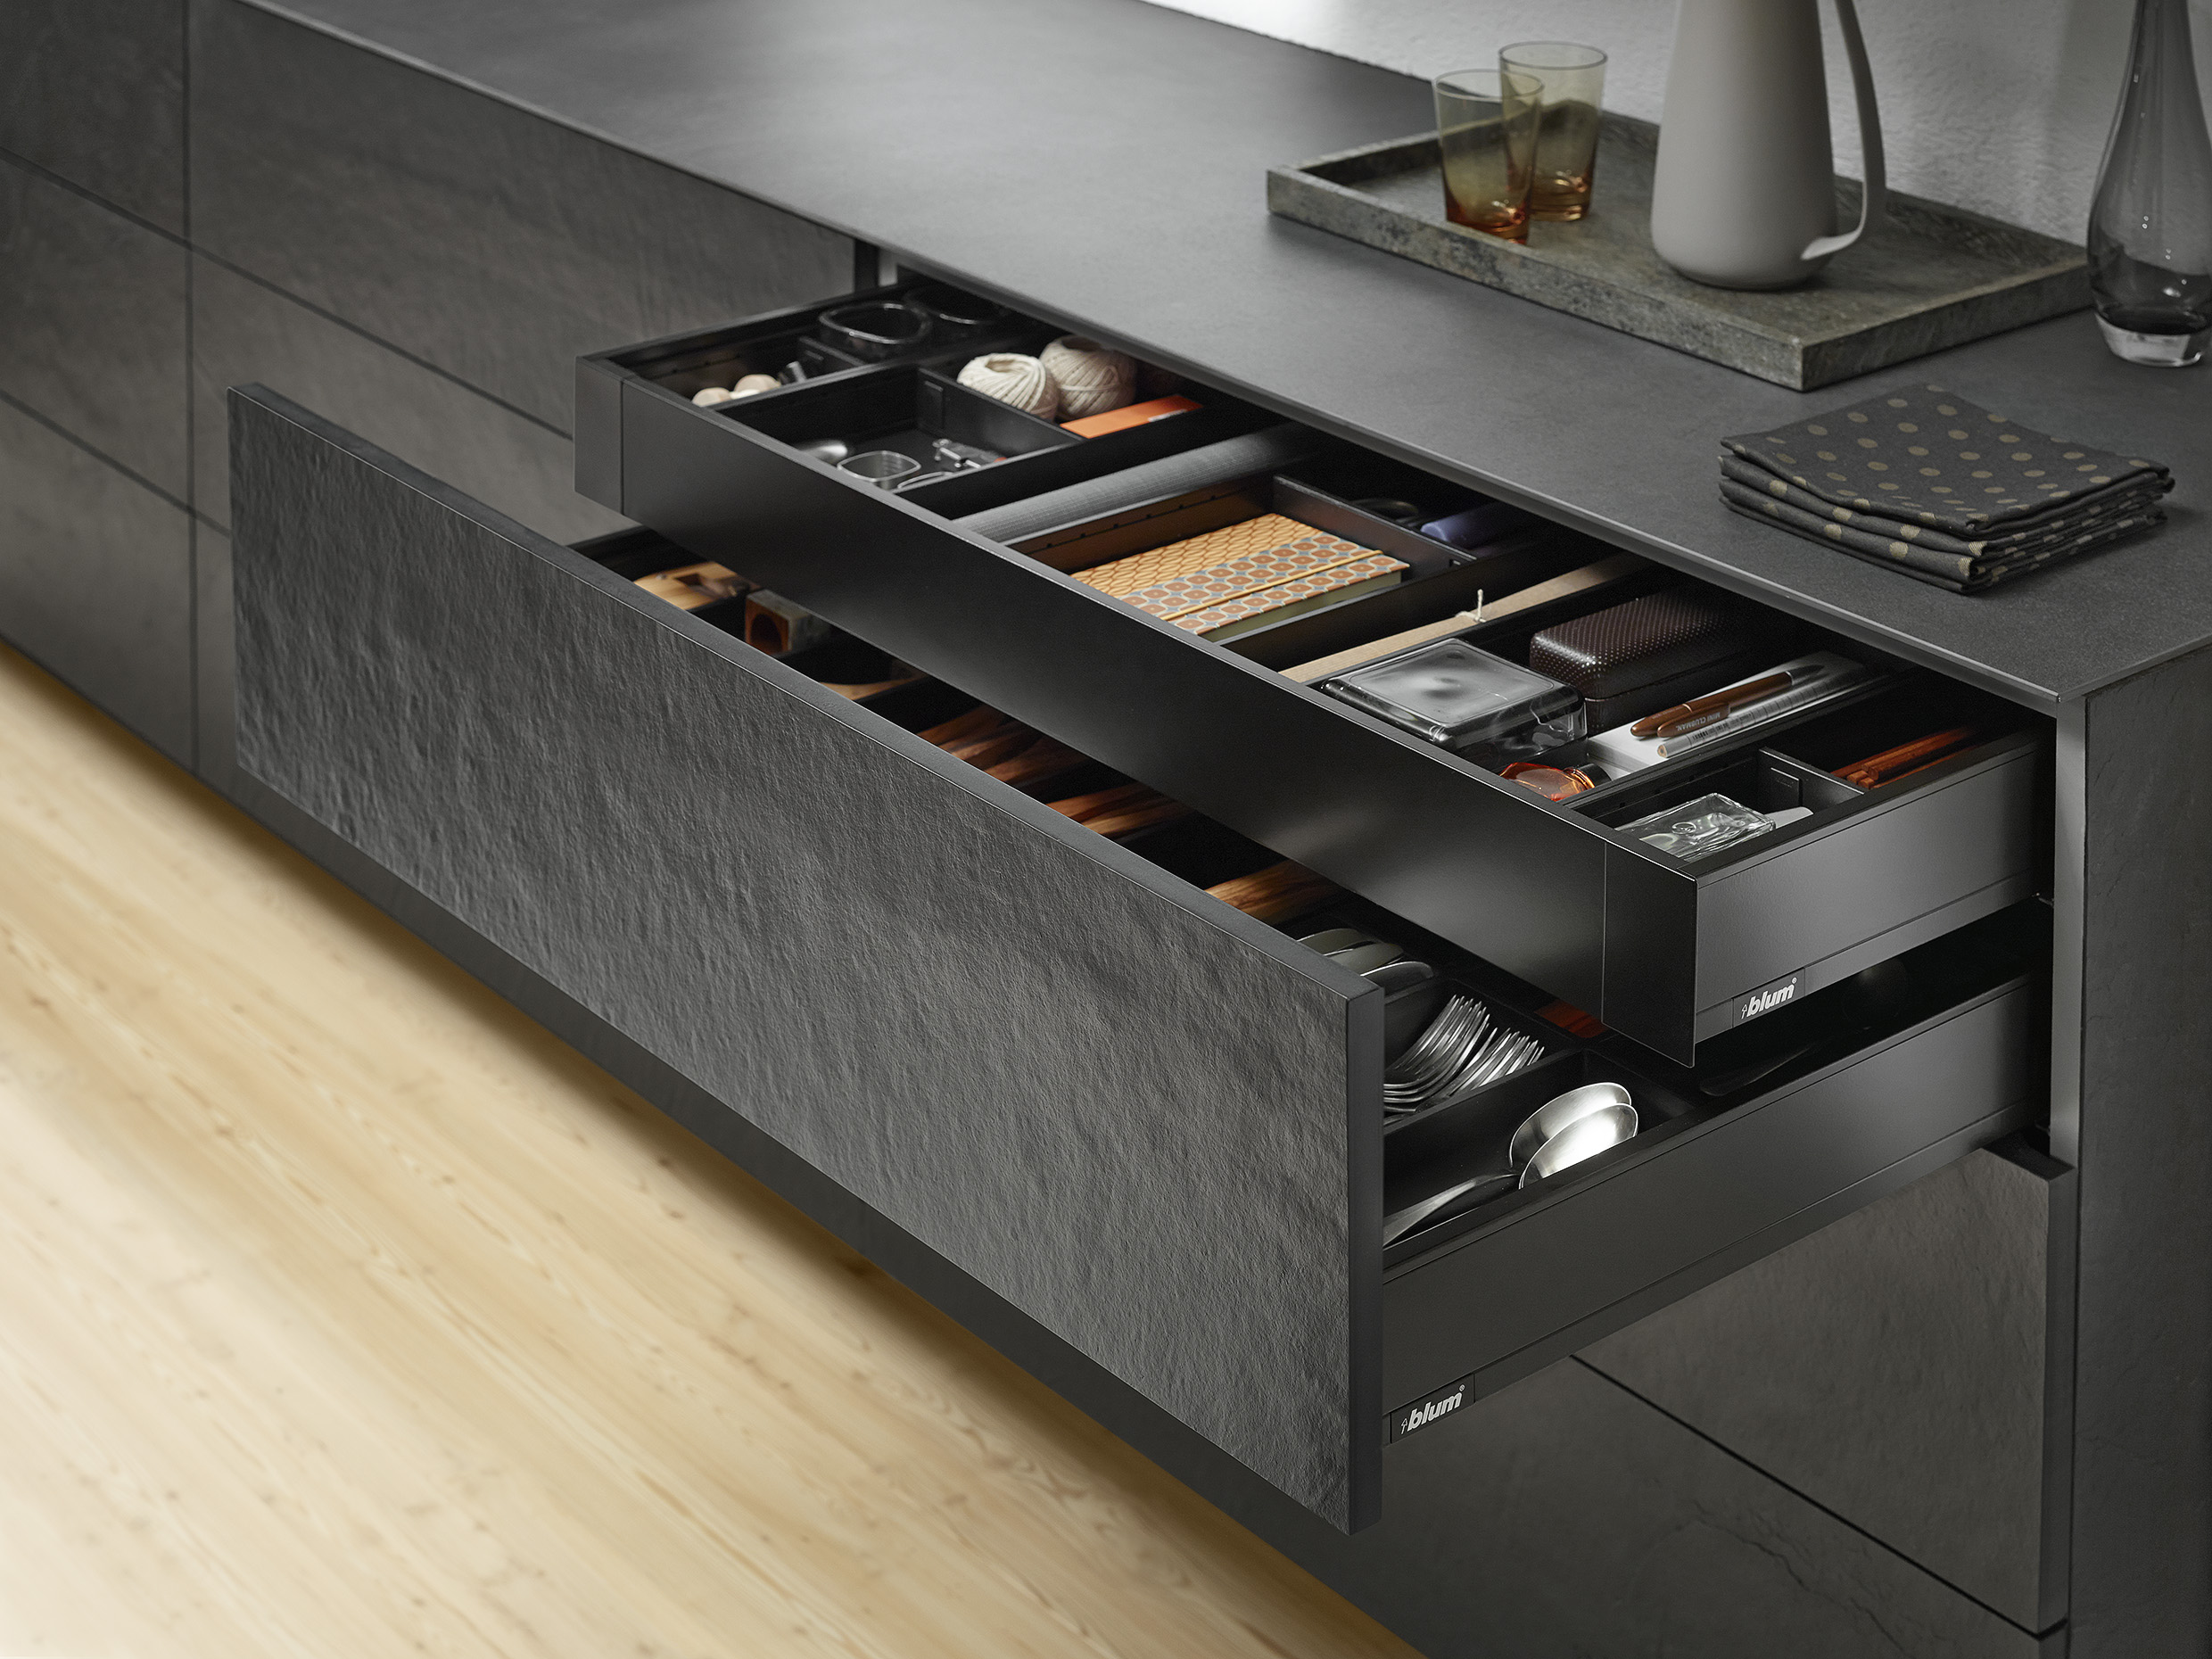 Tiroir Legrabox en Noir terra mat BLUM - tendances 2021 - BLUM - solutions agencement lbx0171_all_990633